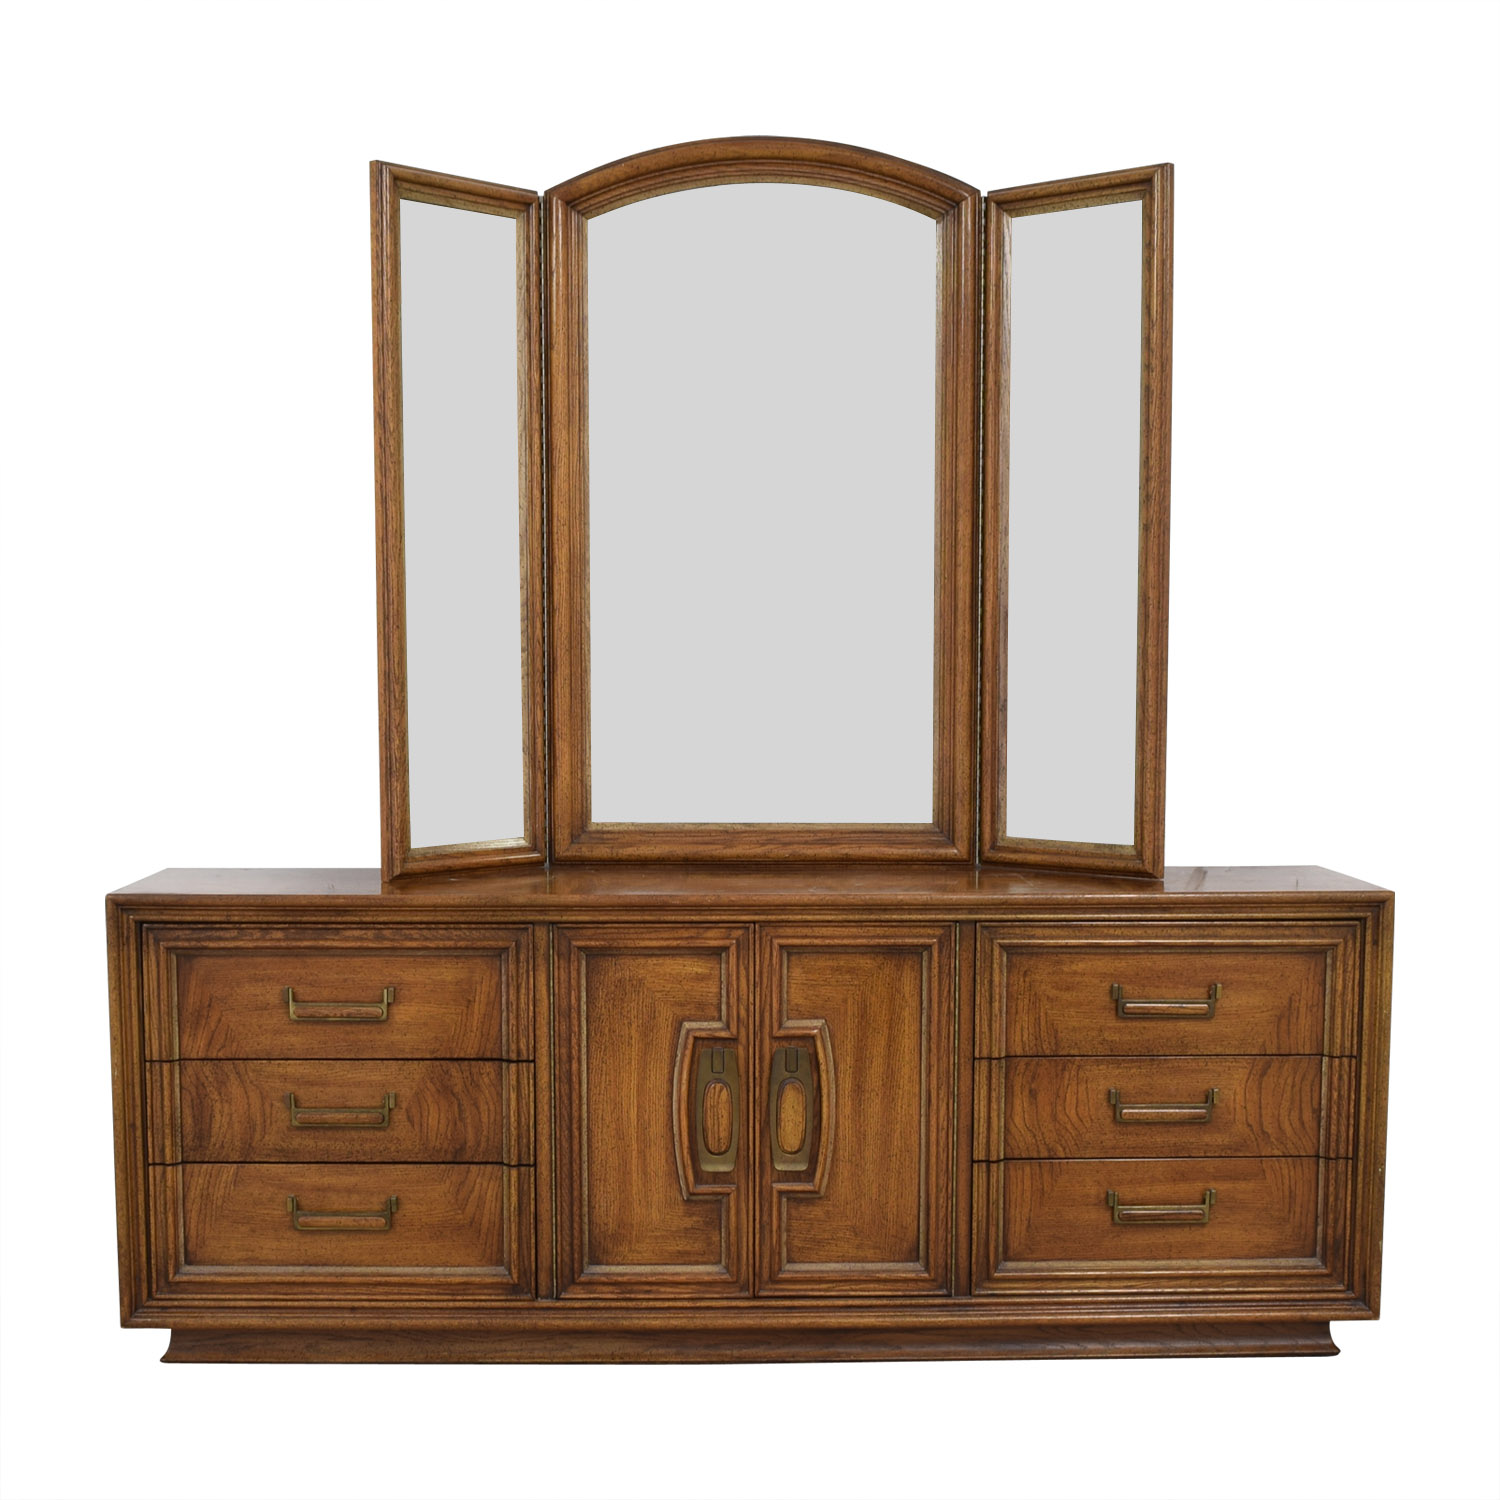 Vintage Dresser with Vanity Mirror on sale